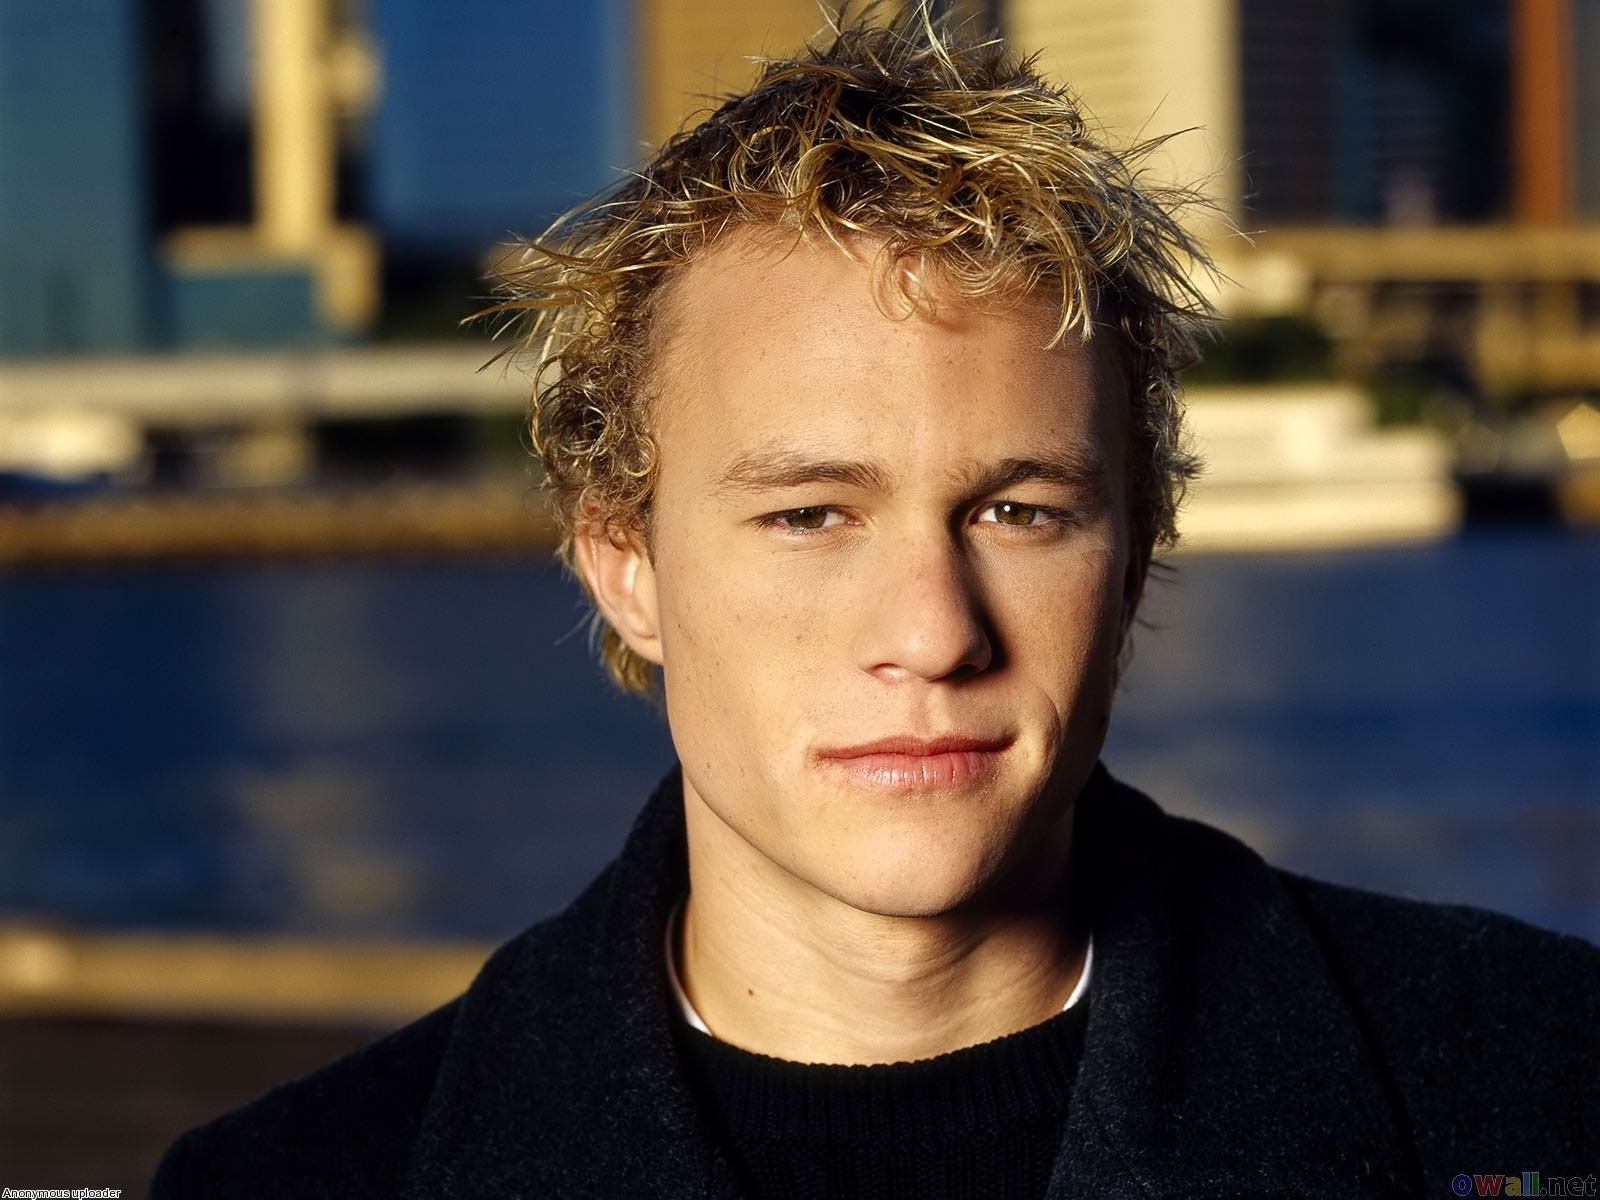 http://4.bp.blogspot.com/-LNpzqXOiZL0/TihPuy7_I7I/AAAAAAAAJY0/WKu09iJq_Ss/s1600/heath_ledger_australian_television_and_film_actor_1600x1200.jpg